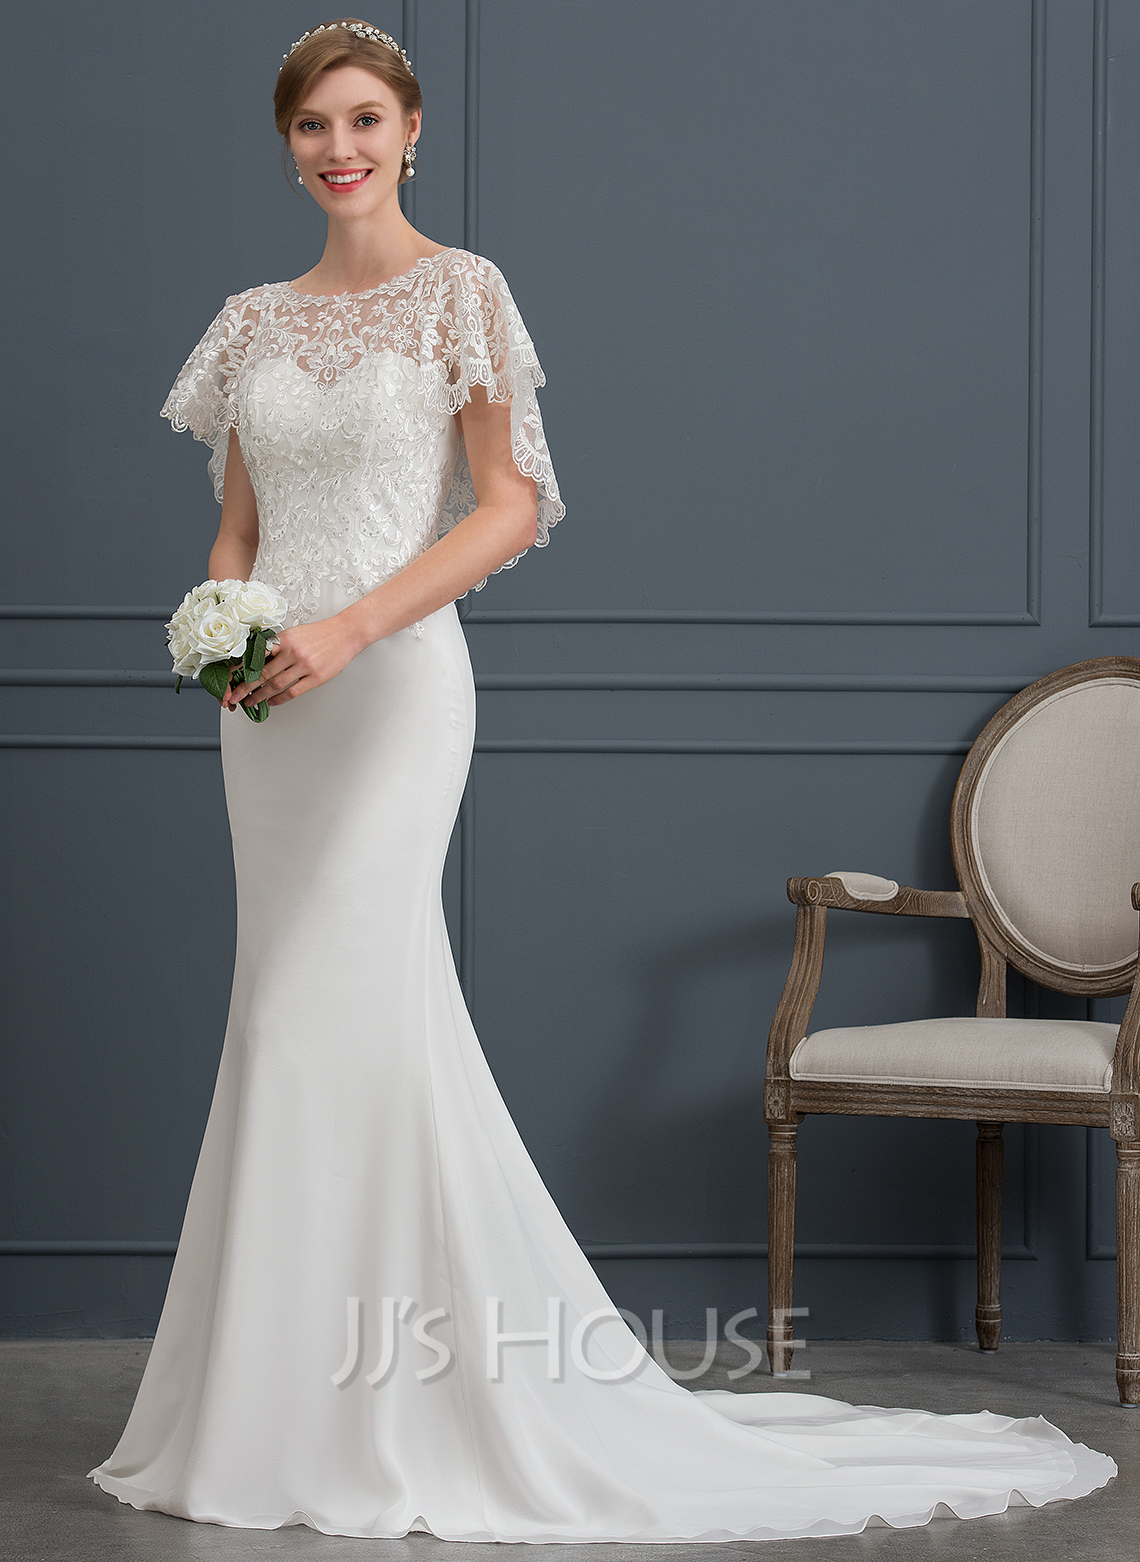 21096ddd3087 Trumpet/Mermaid Scoop Neck Court Train Chiffon Wedding Dress. Loading zoom